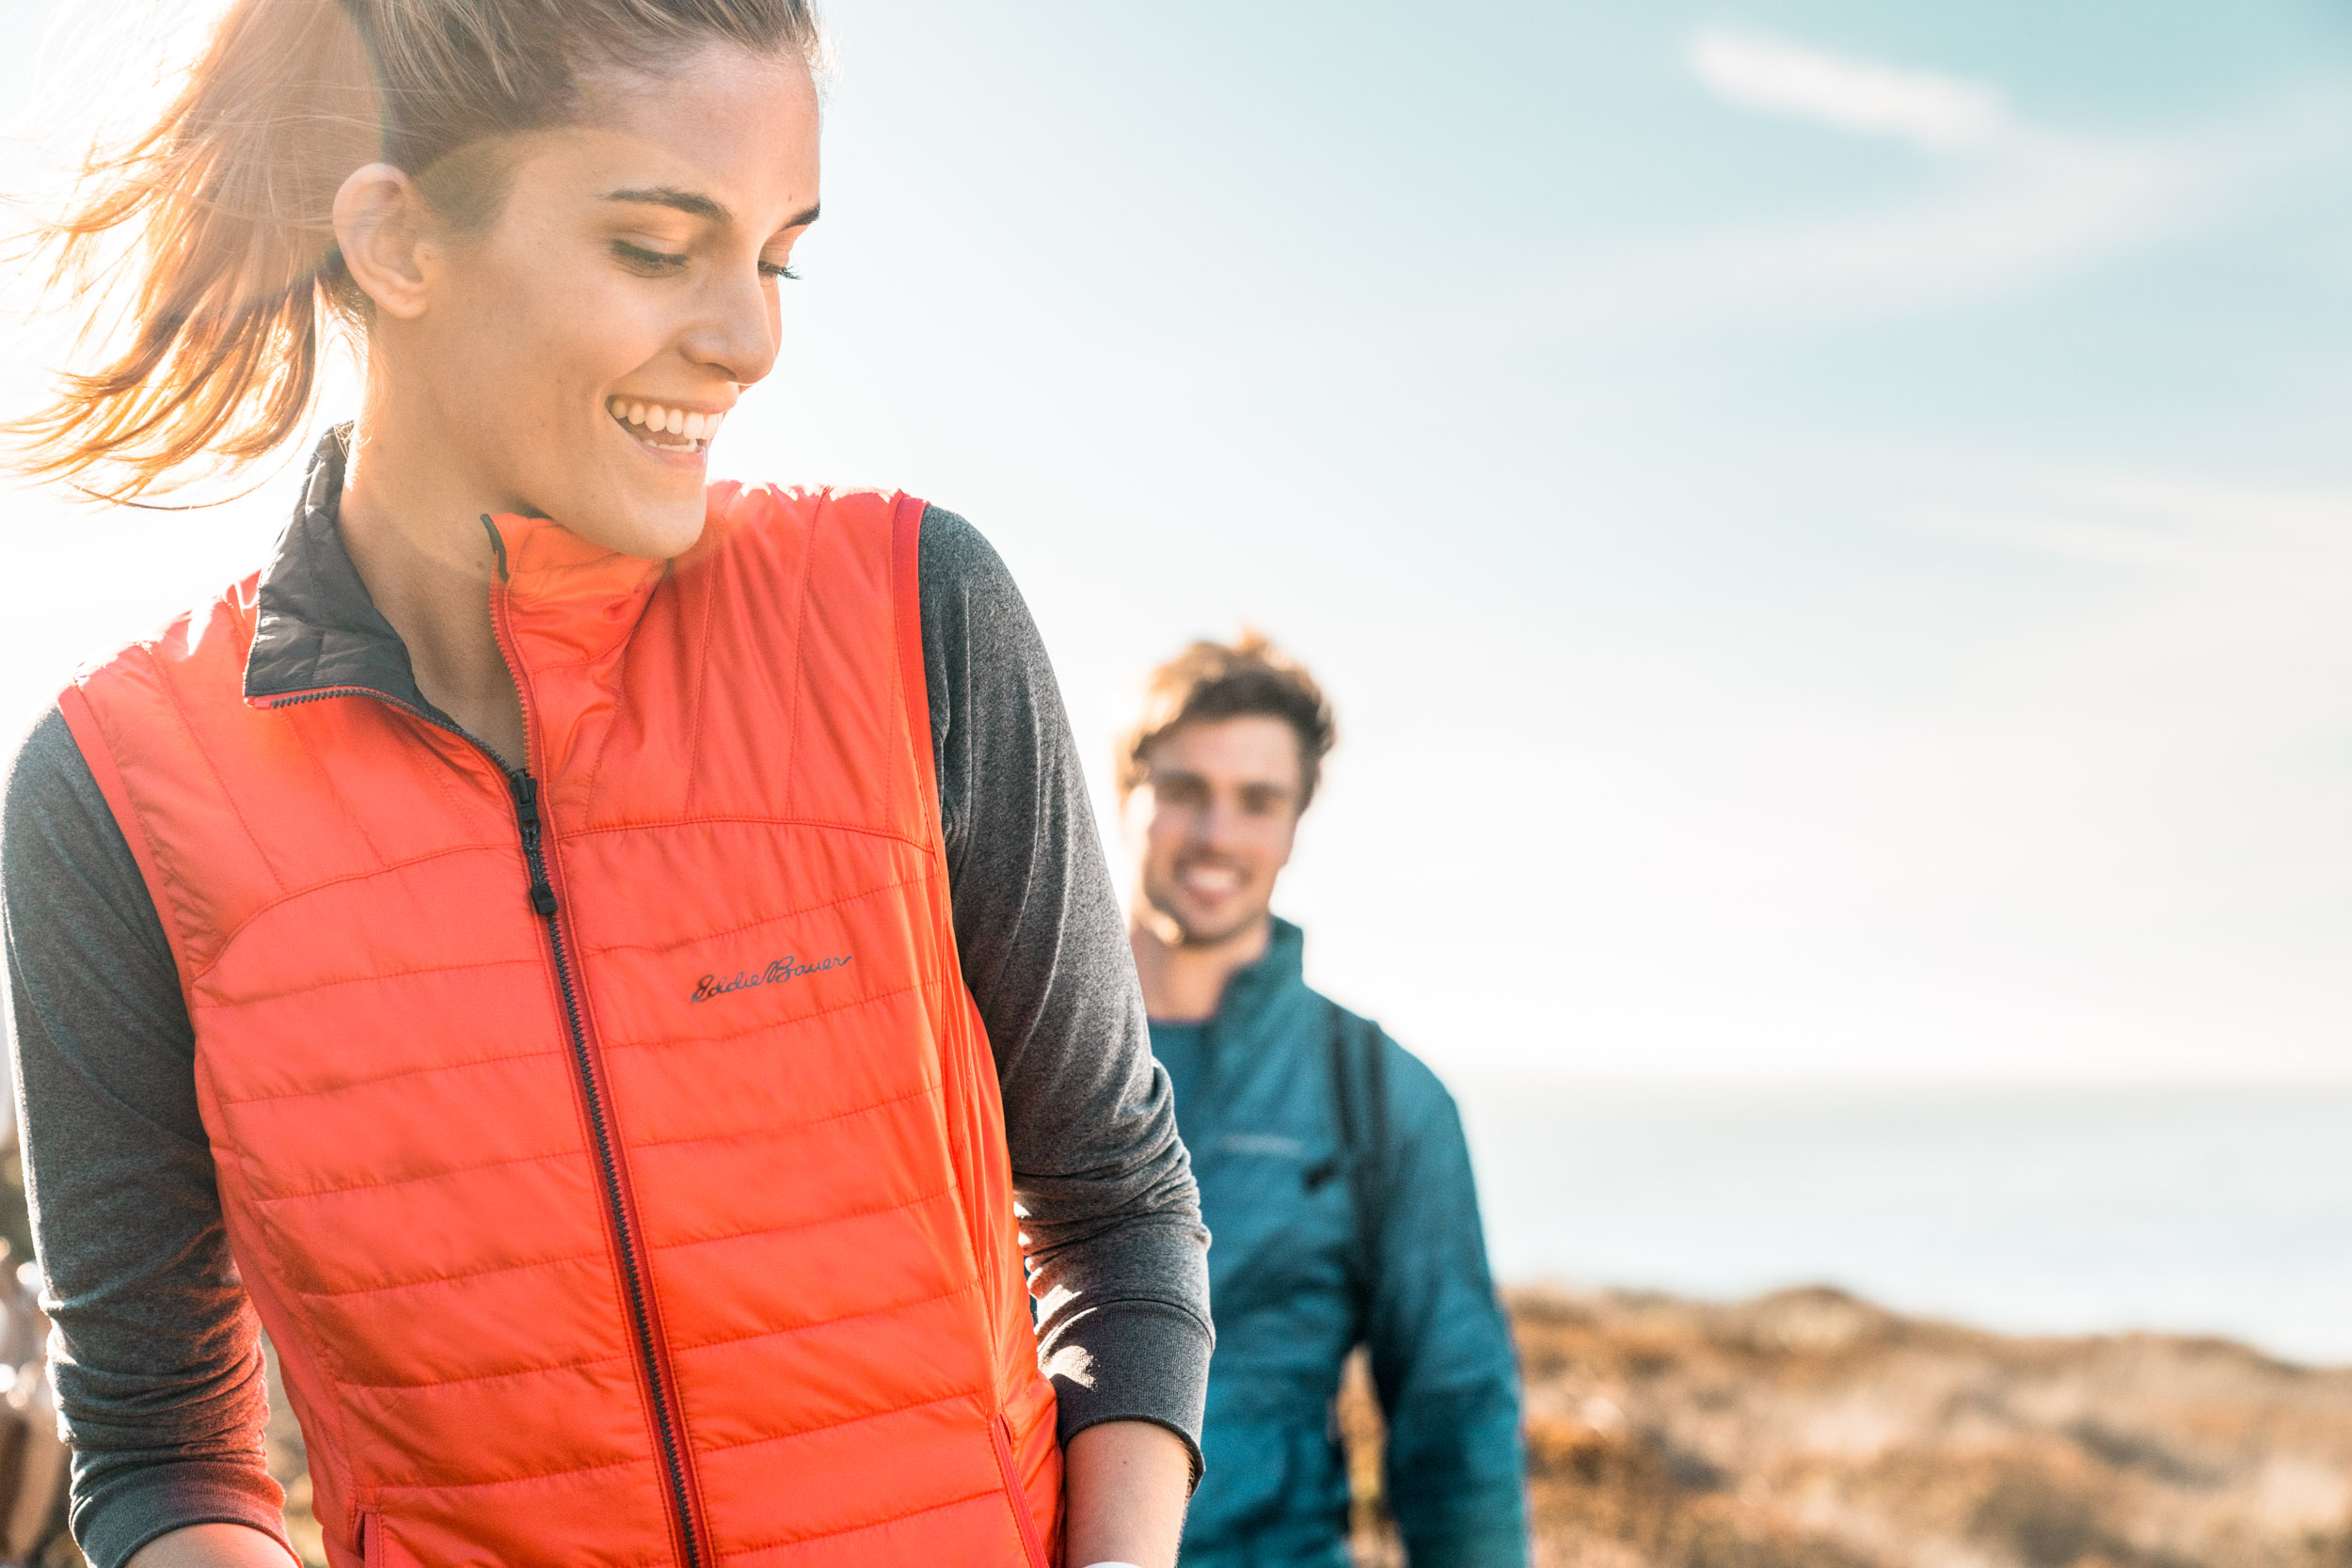 Female athlete in red vest looks back at male athlete in blue jacket on the coast